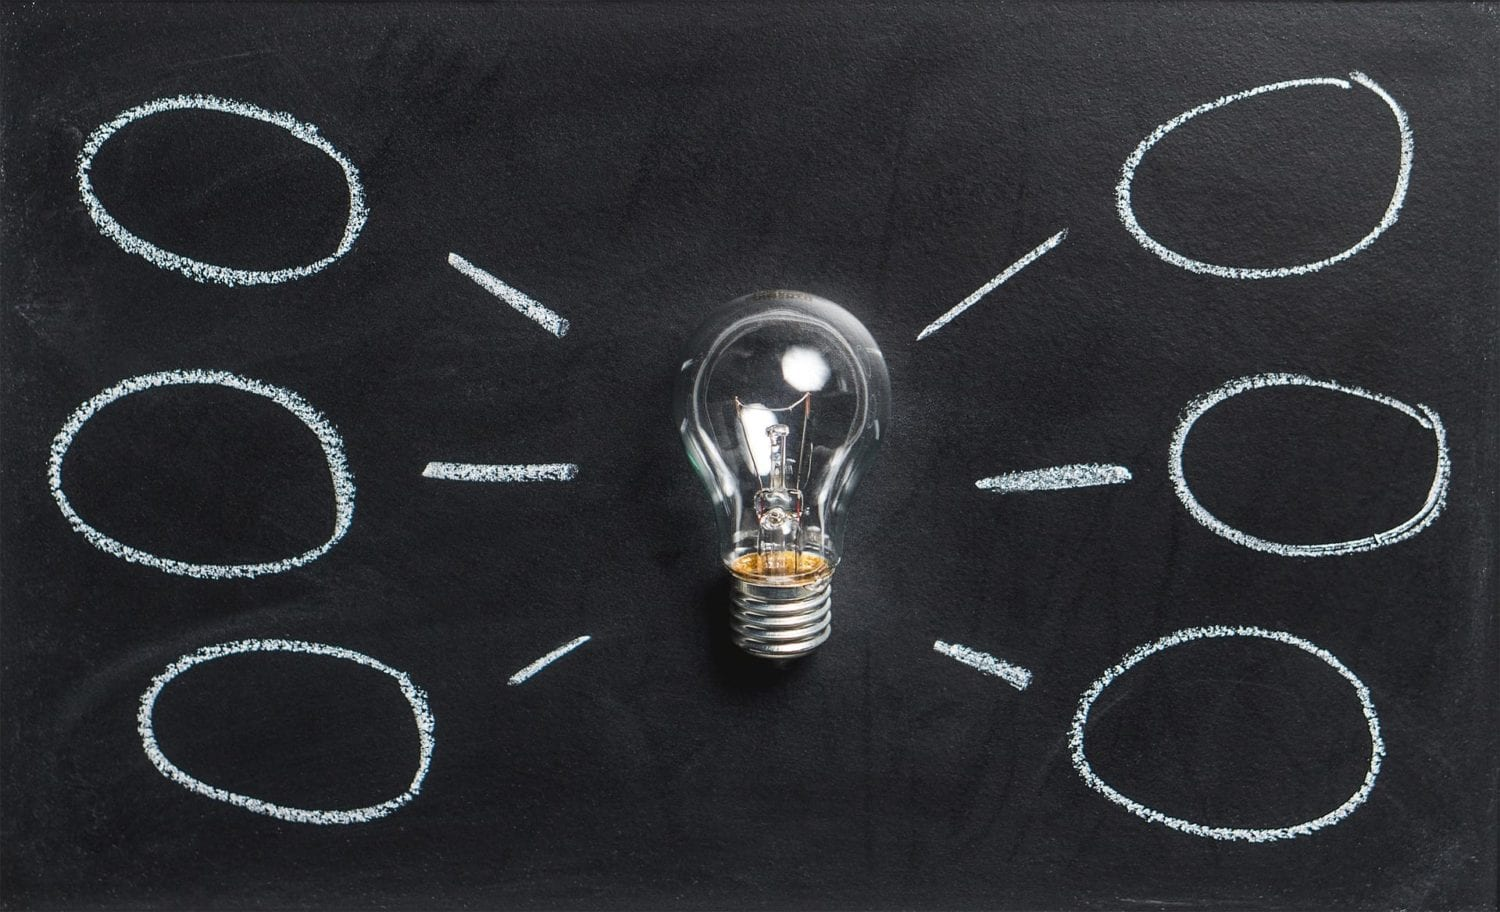 Lightbulb ideas for business strategy on blackboard with chalk information bubbles